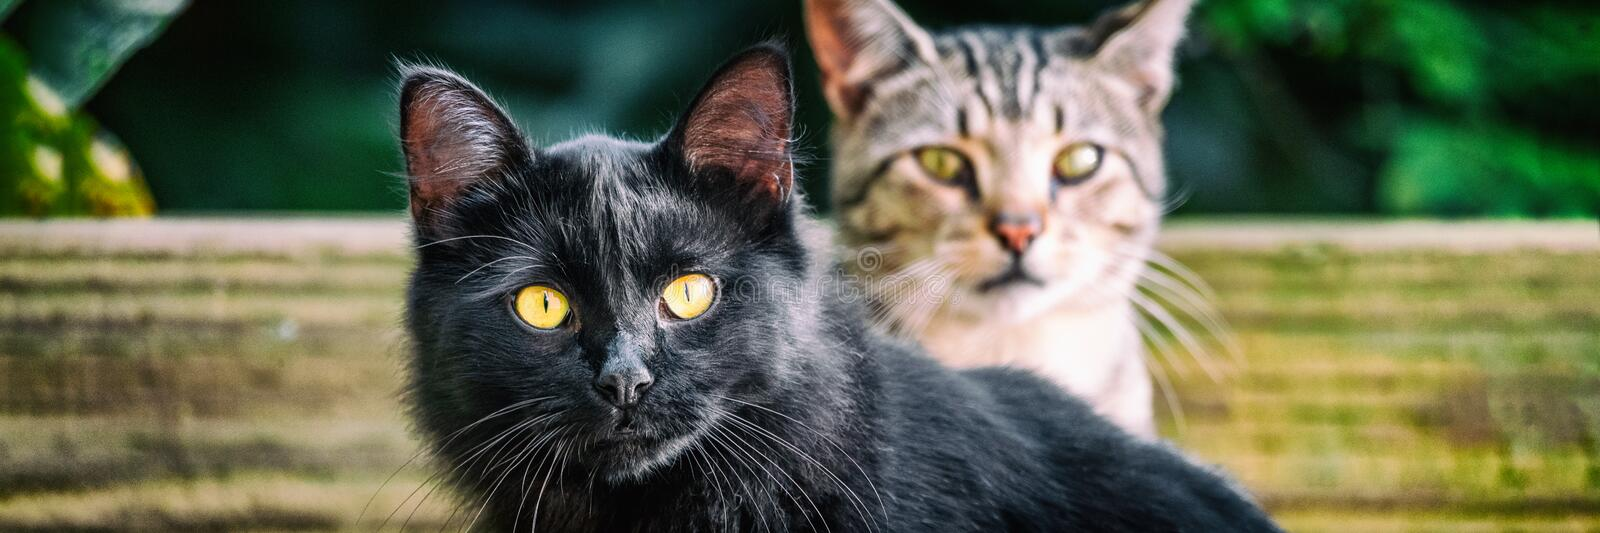 Black cat with yellow eyes banners . Two cute cats outside in garden looking. Panoramic crop. House pets stock image